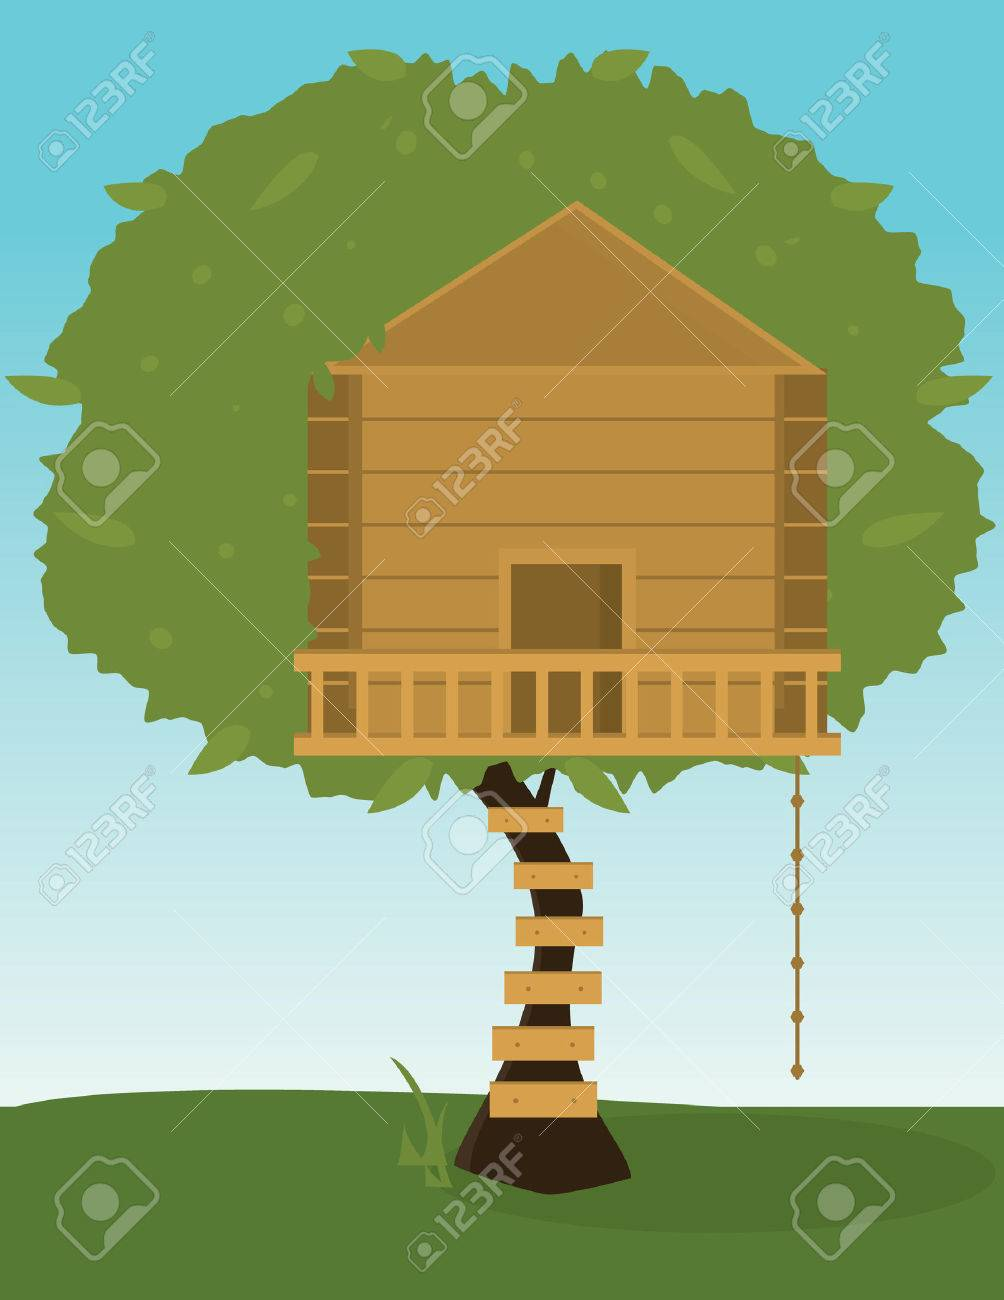 Tree with wooden treehouse and climbing rope Stock Vector - 6468221